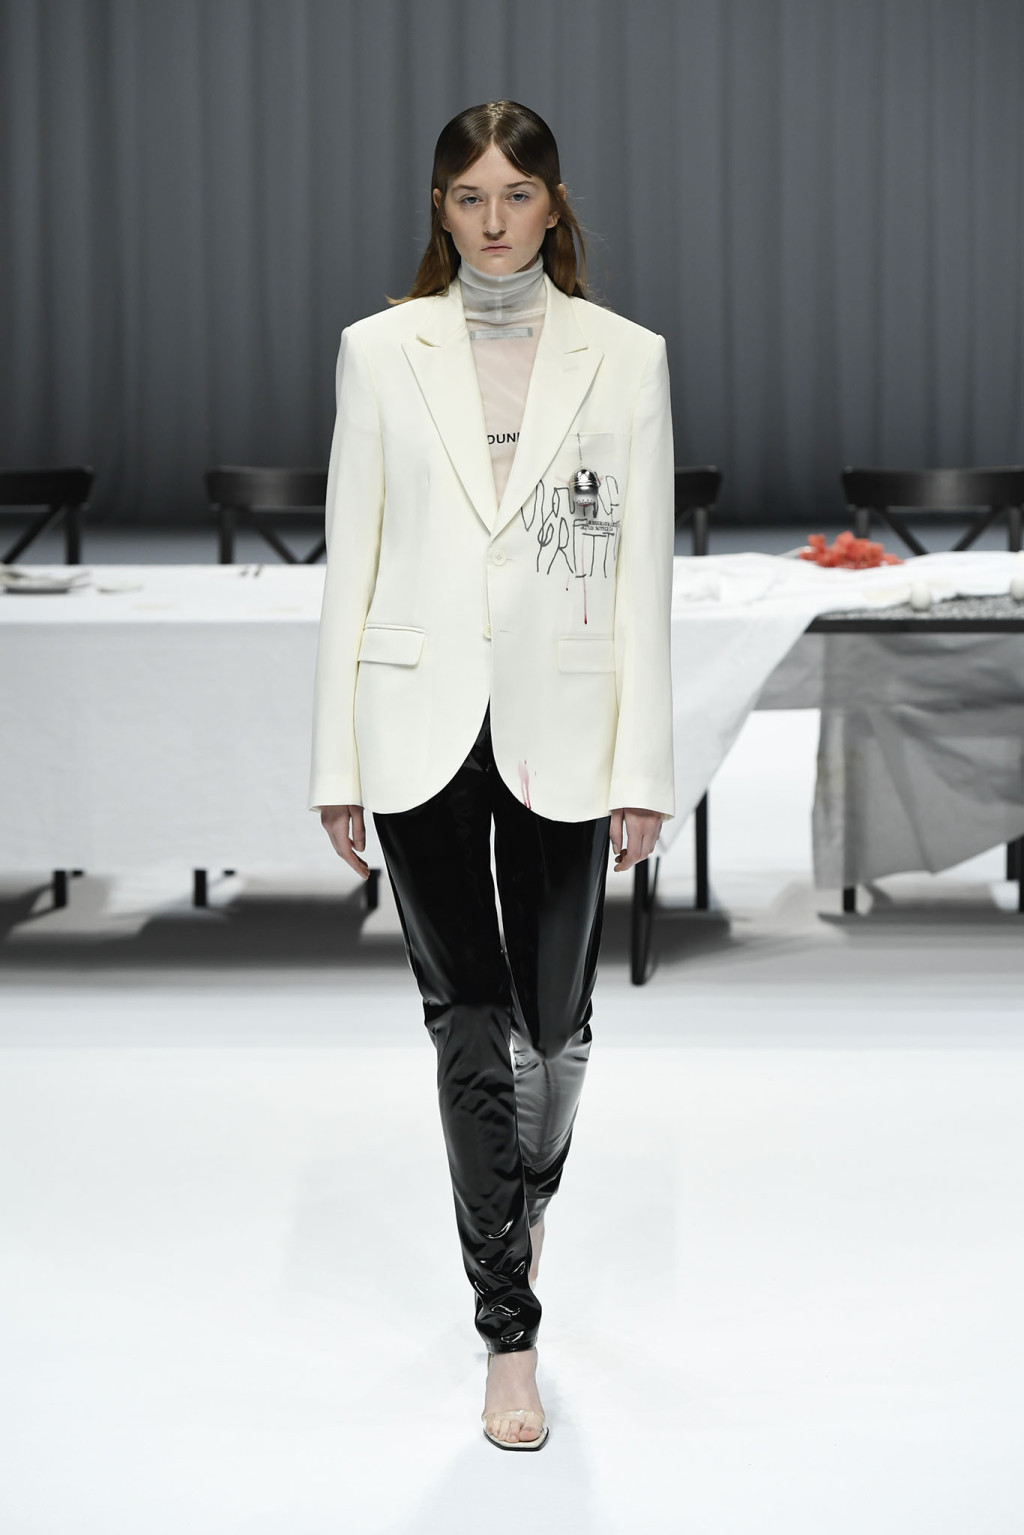 Androgynous Fashion Is The Next Best Thing